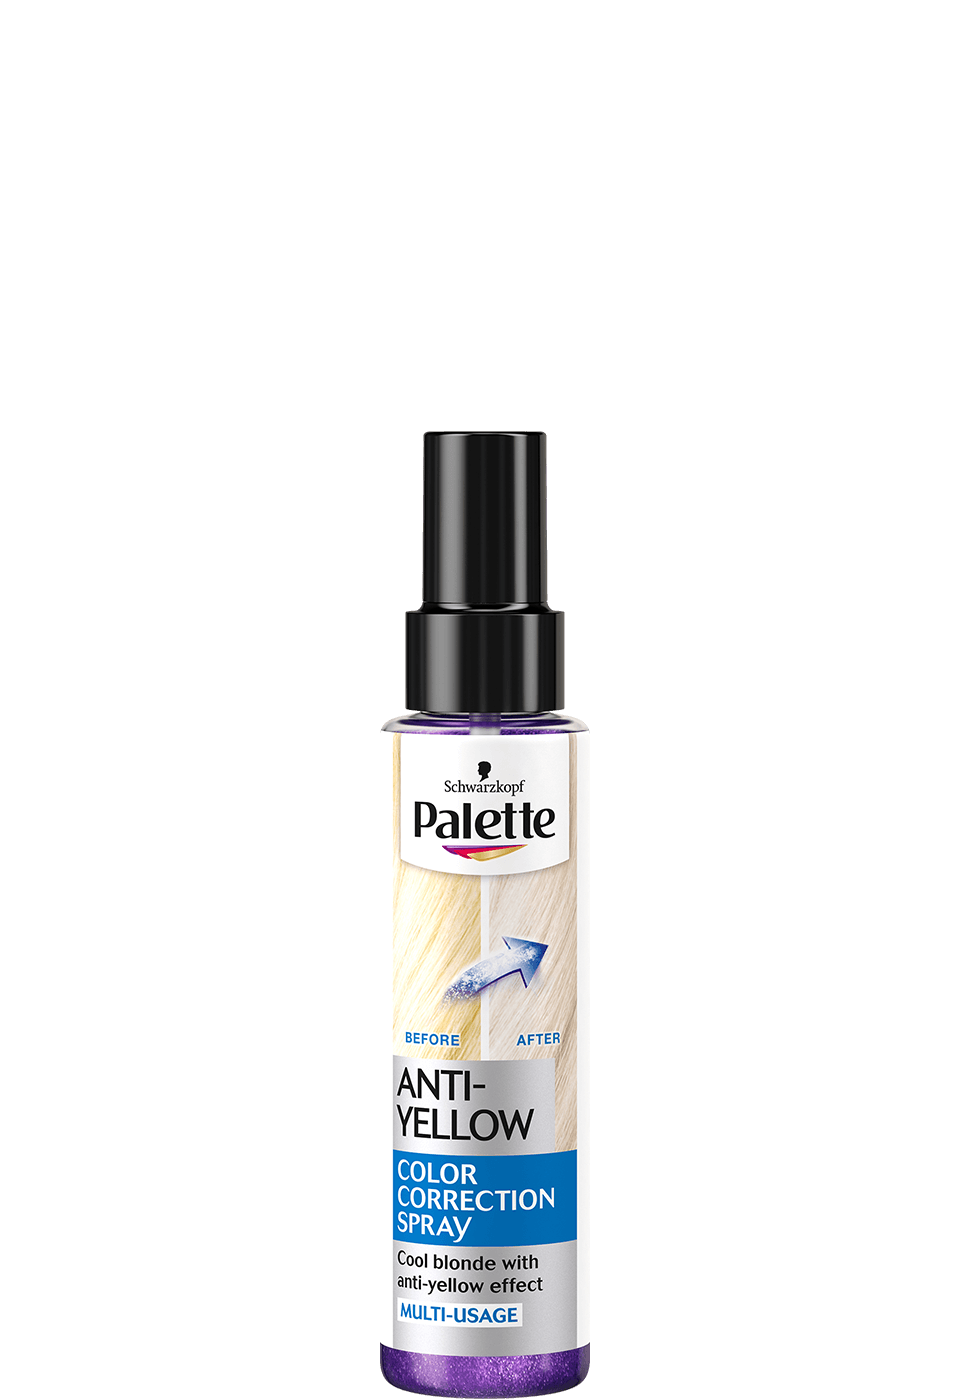 palette_com_anto_yellow_color_correction_spray_970x1400